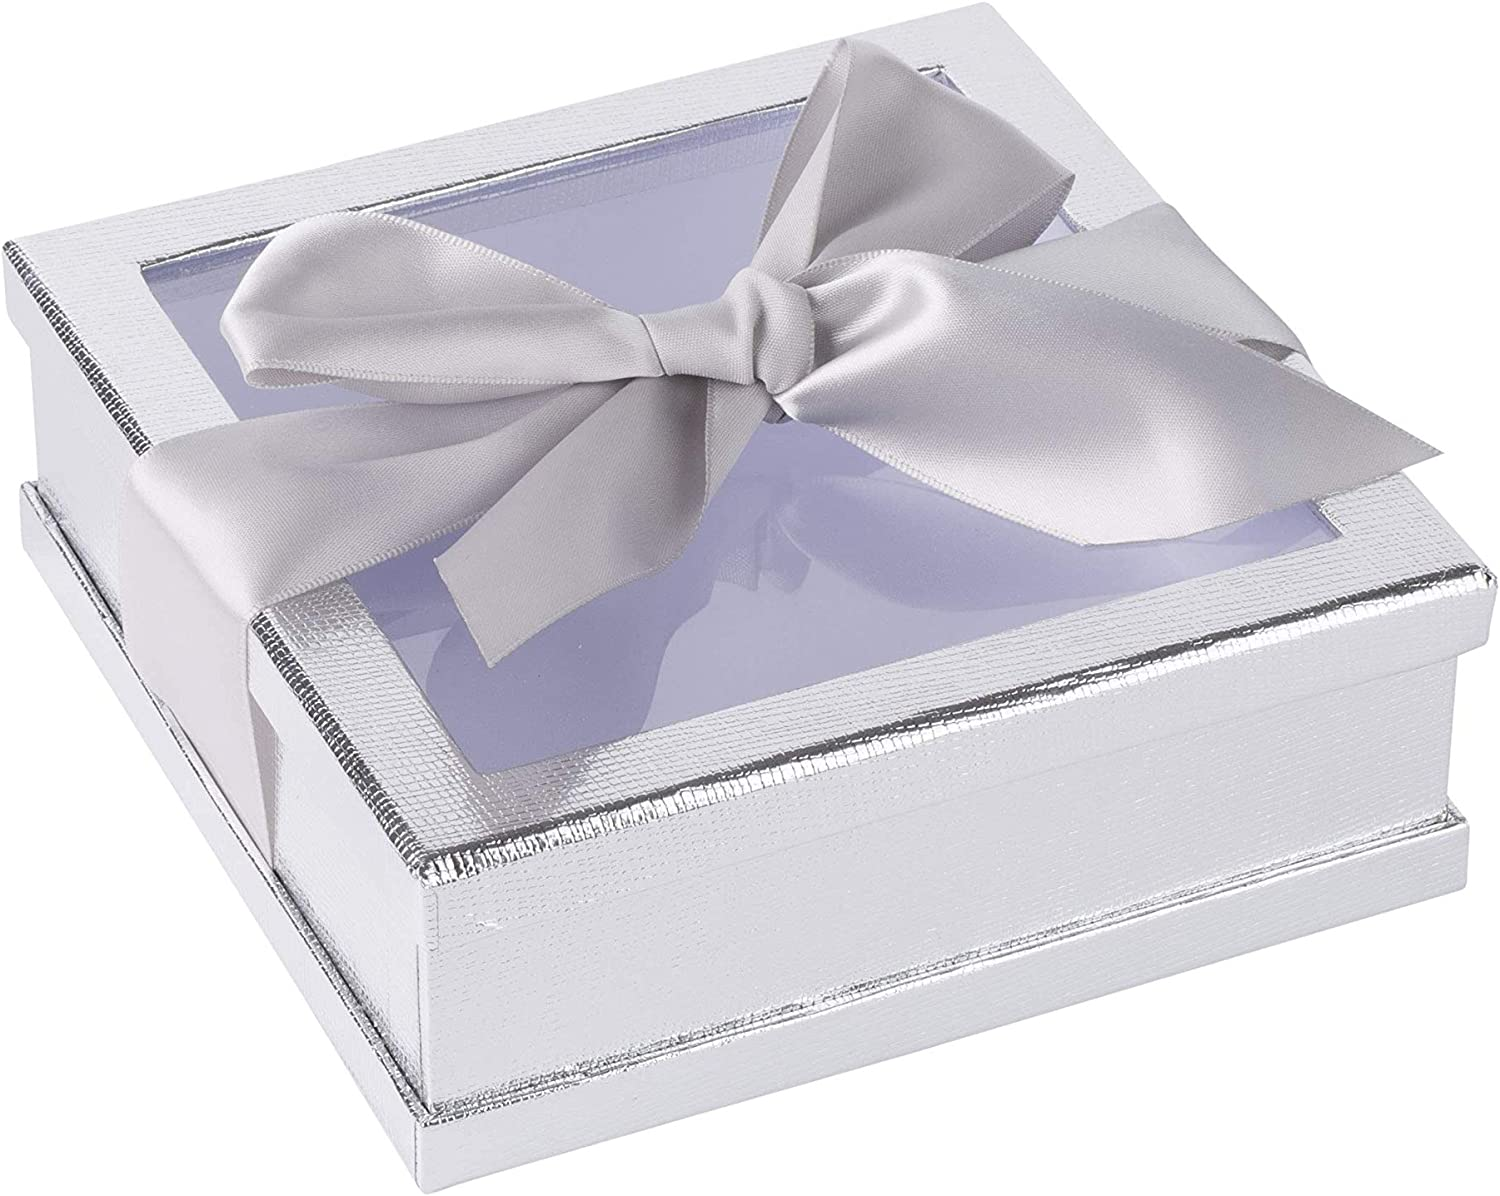 """Cookies and Cupcakes Hammont Clear Window Gift Boxes Treat Boxes Perfect for Party Favors Maroon, 6/"""" x 6/"""" x 2/"""" Multipurpose Bakery Boxes with Ribbon 3 Pack"""